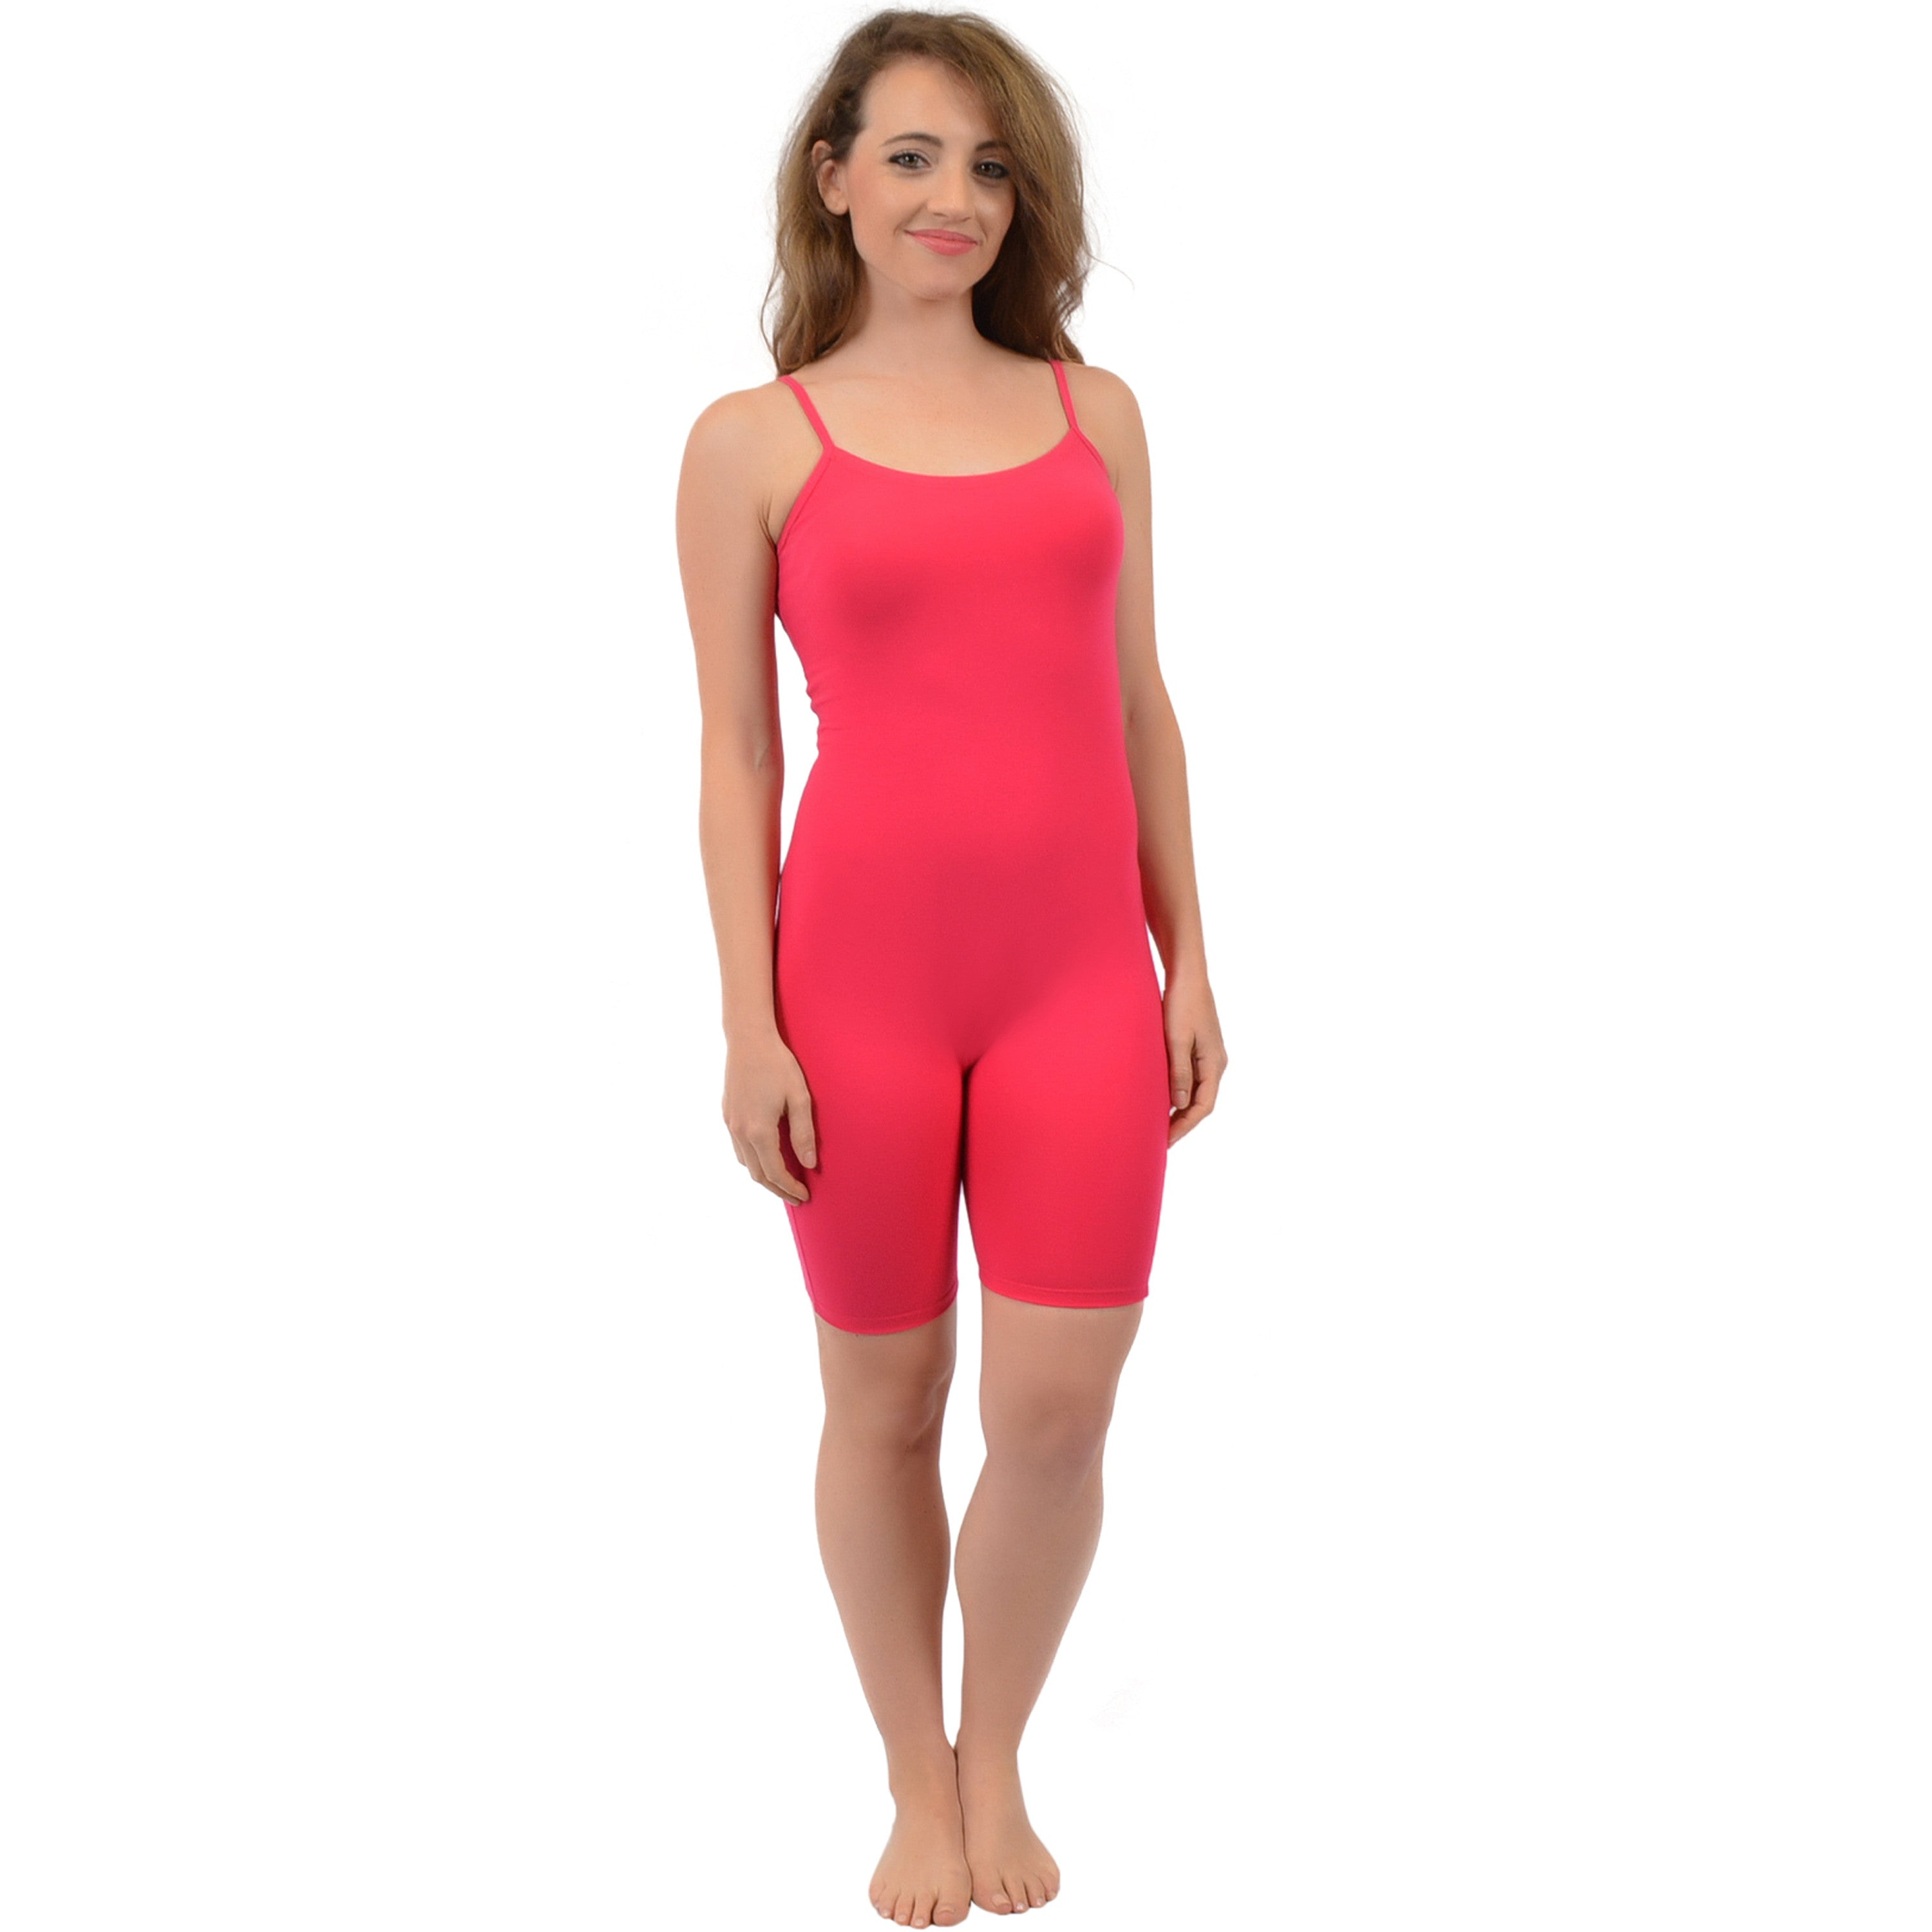 Women's Cotton Camisole Unitard Shorties